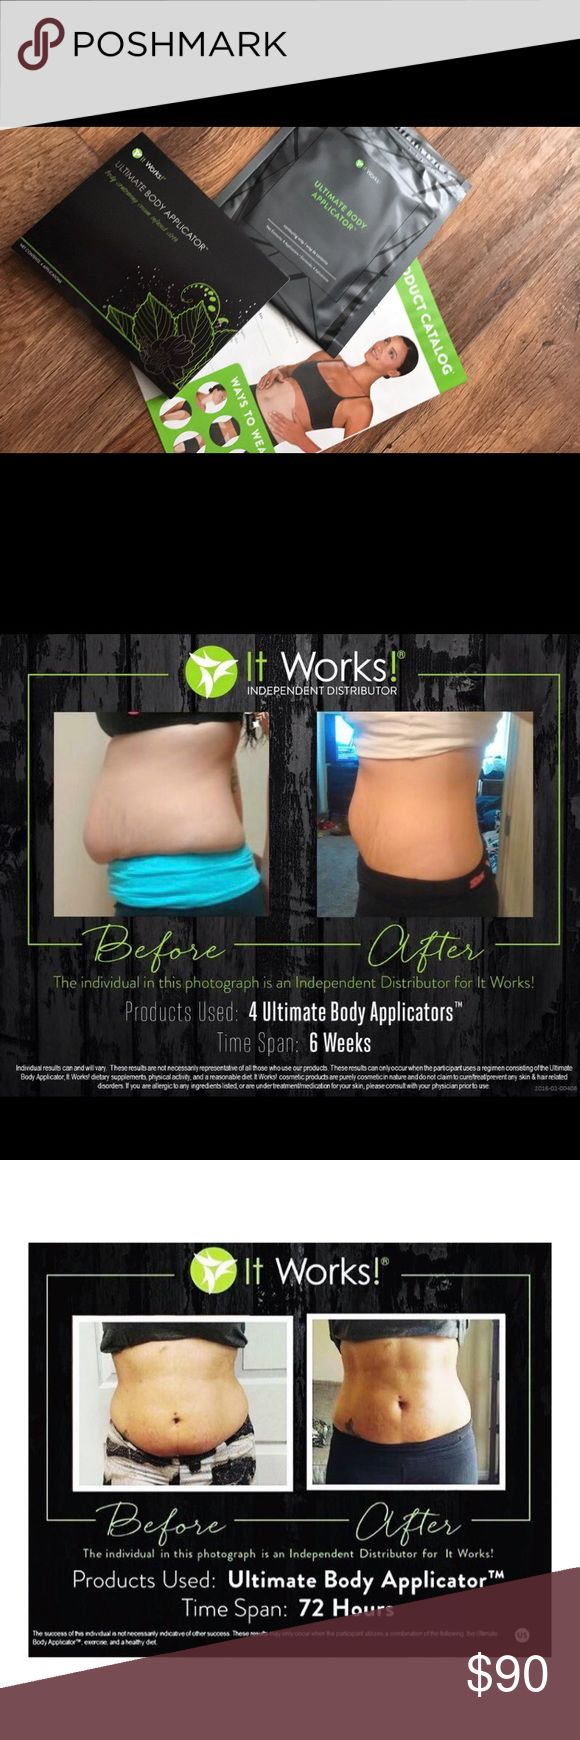 Itworks Ultimate Body Applicators (wraps!) These Ultimate Body Applicators are infused with a botanically based formula! They: •Tighten, tone, & firm skin  •Redefines the appearance of your body's contours  •Improves skin texture & tightness  •Mess free & simple to use  •Results in as little as 45 minutes  •Fast & lasting results with continued use •Contains botanical extracts  I have a total of 4 wraps on hand! $25 EACH or $90 for a pack of 4. Pic shows 2 packs, note that price is for ONE…